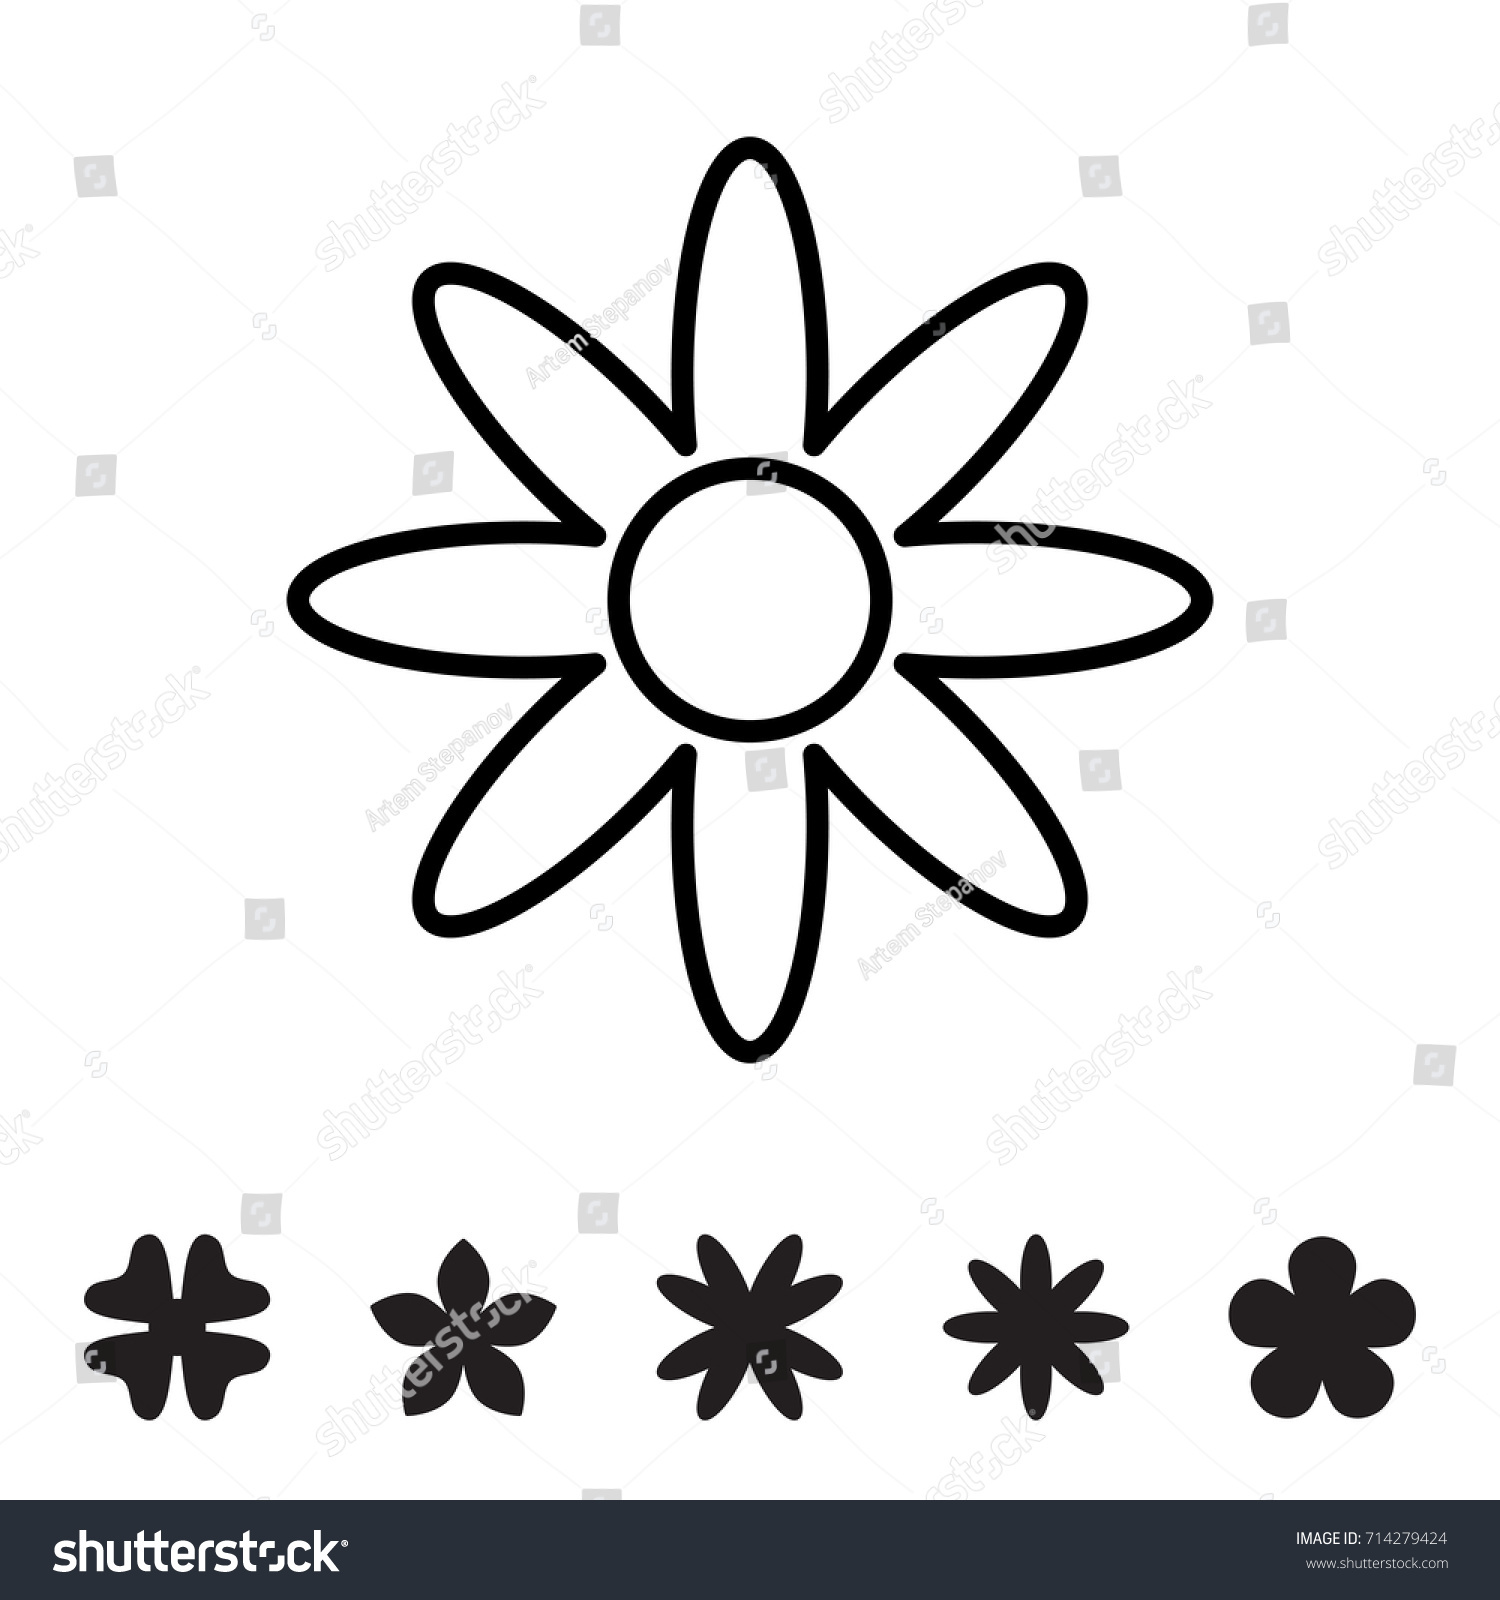 Flower icon collection daisy symbol logo stock vector 714279424 flower icon collection daisy symbol or logo template pictogram blossom silhouette biocorpaavc Choice Image